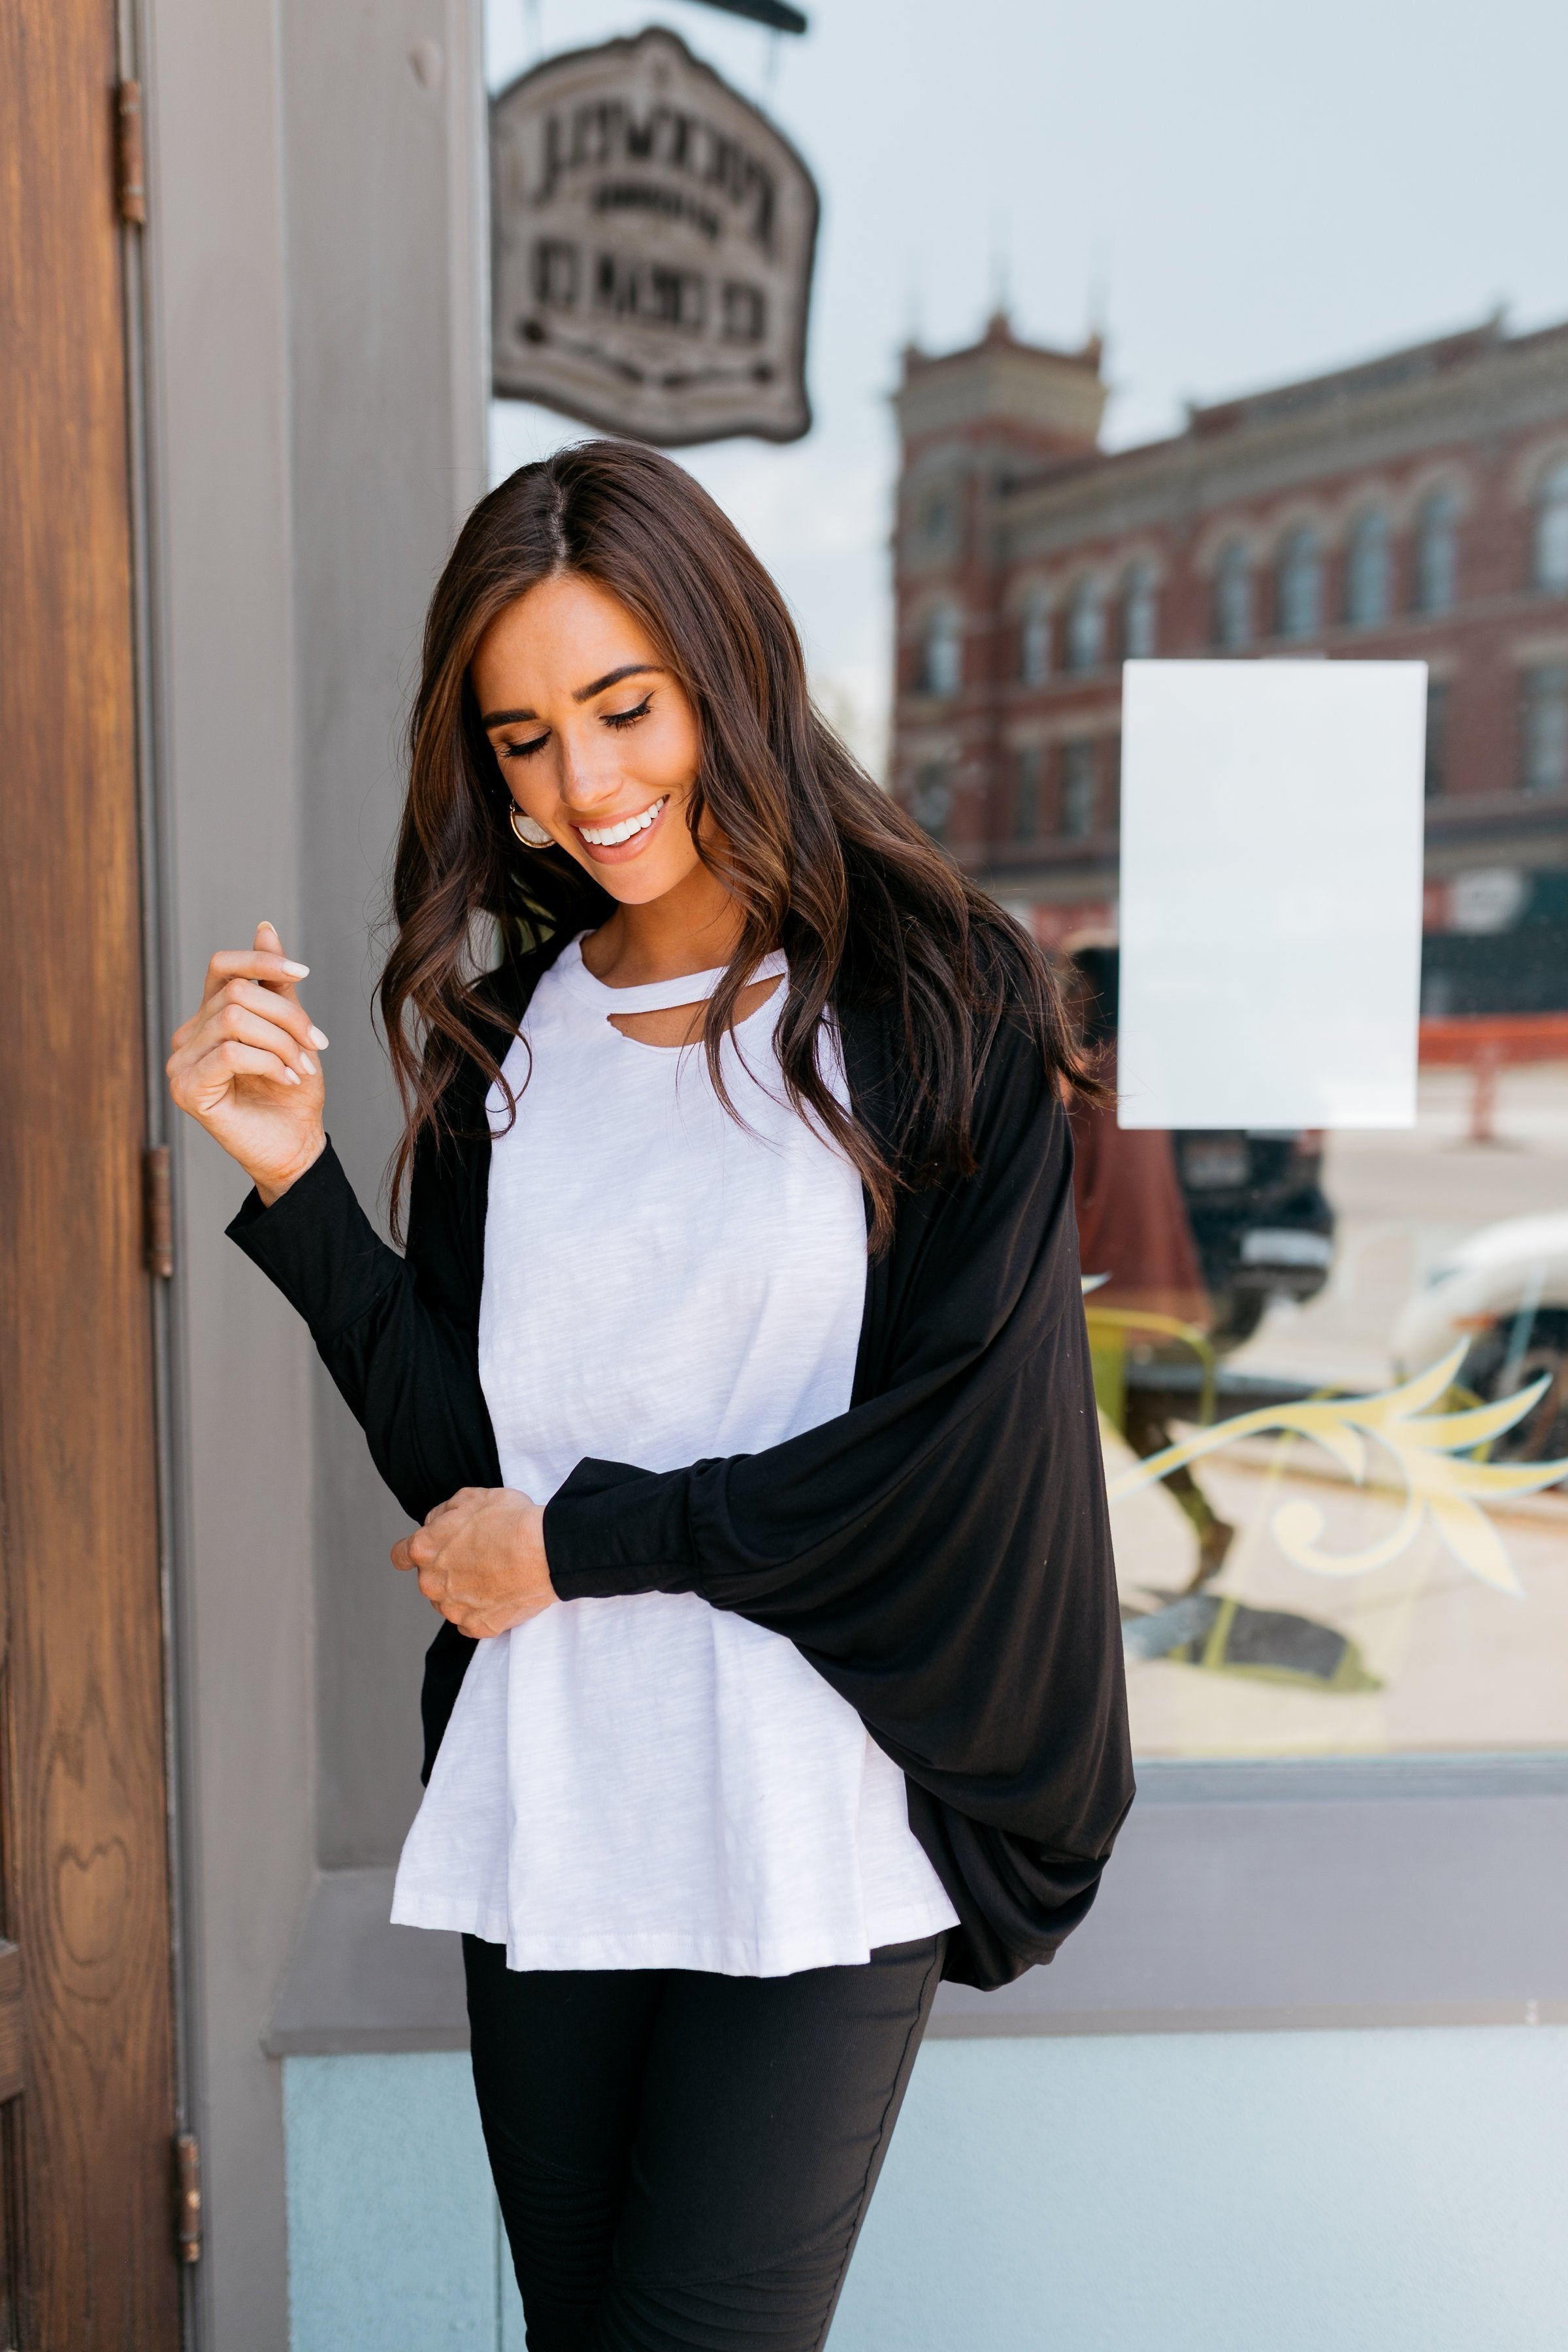 Shrug It Off Cardigan In Black